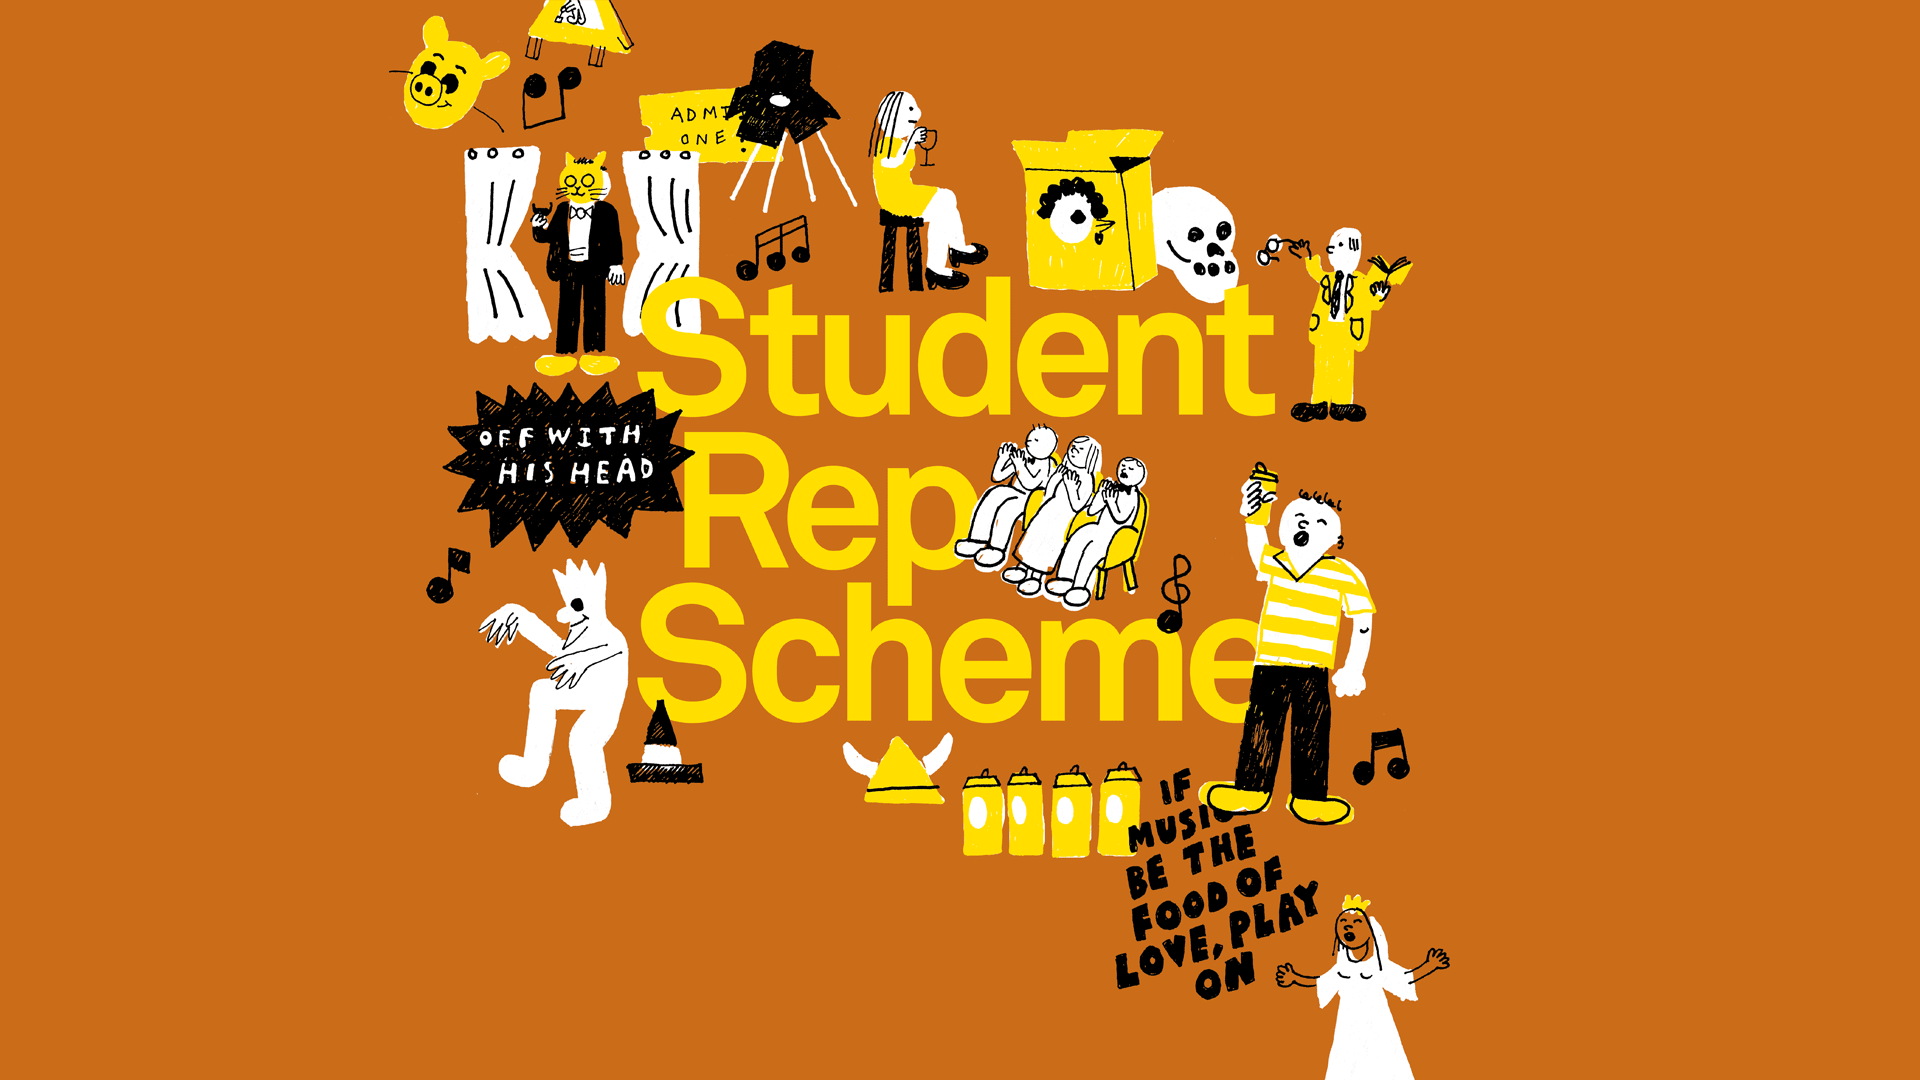 Theatre Royal Plymouth, Student Rep Scheme